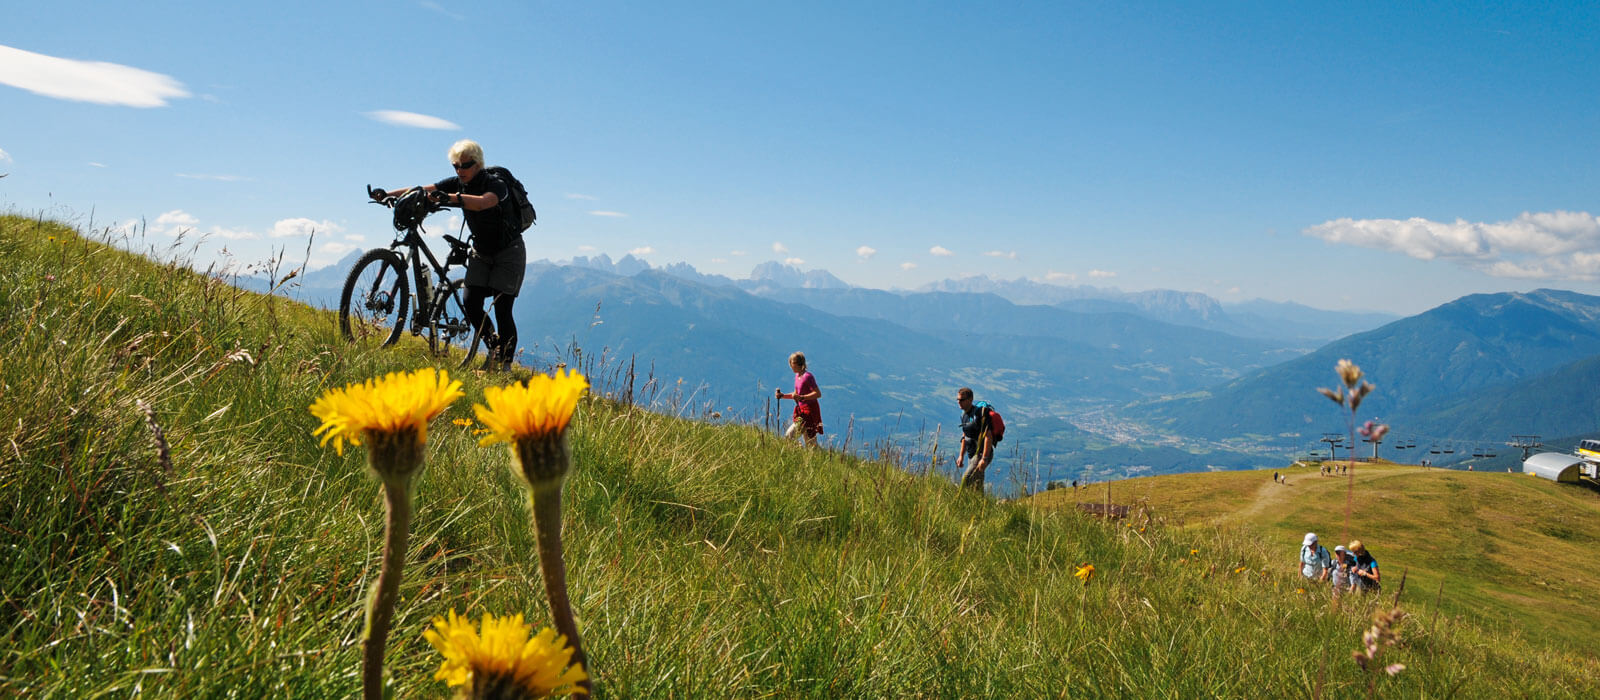 Extreme sports in South Tyrol